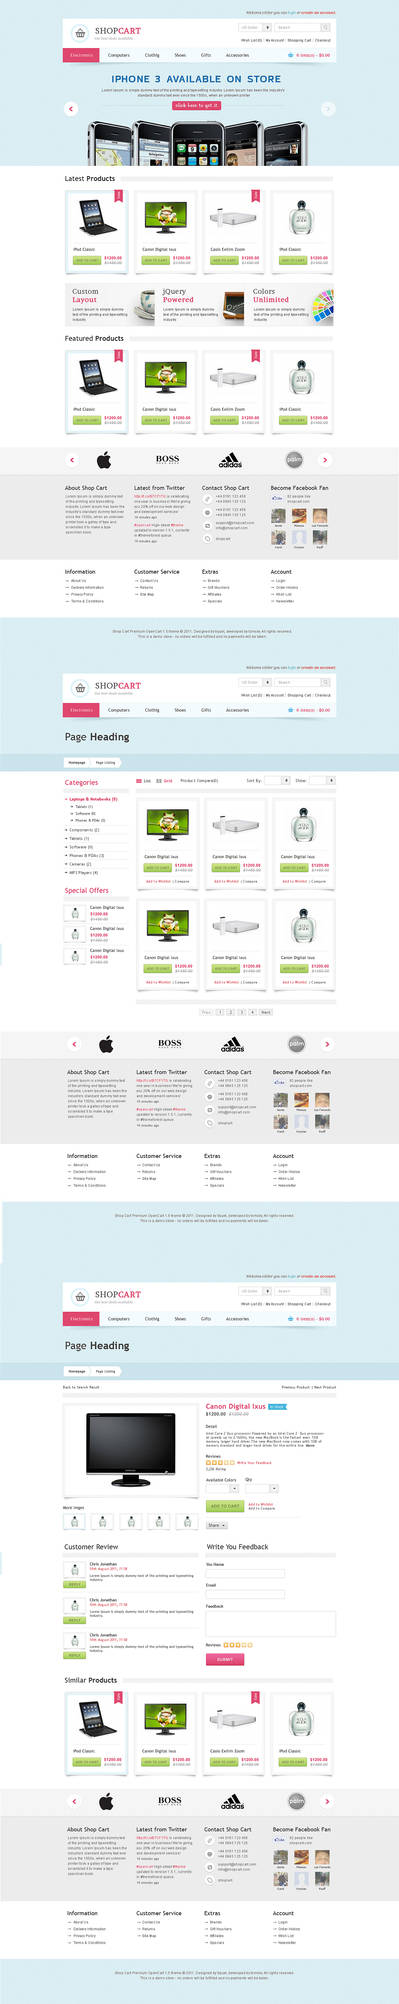 Shop Cart - Open Cart Theme